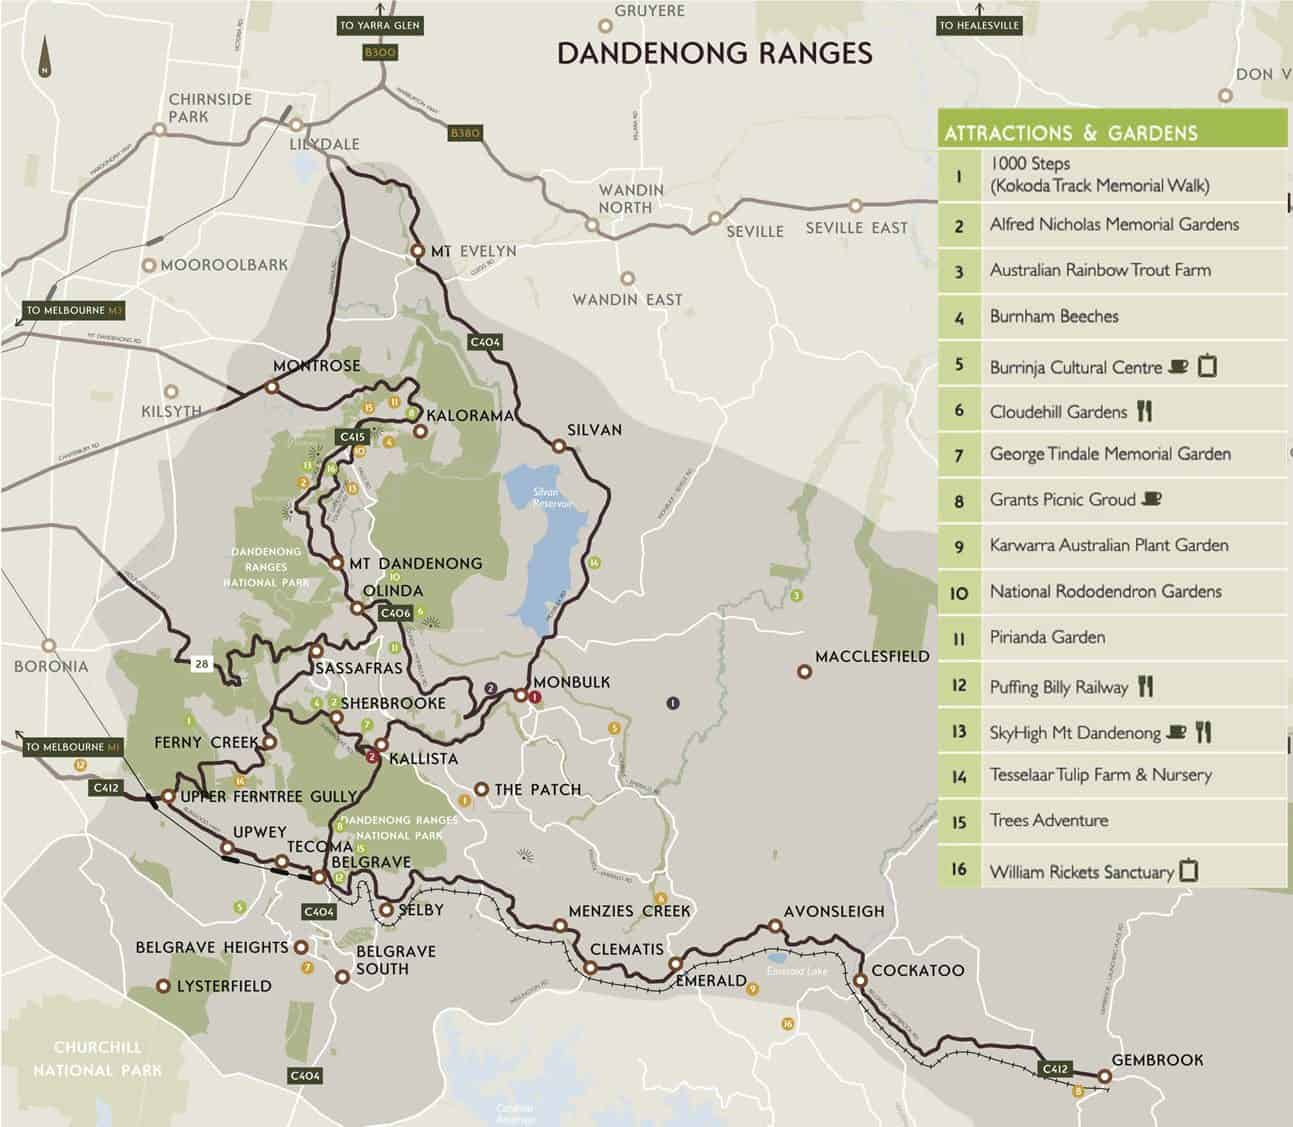 Dandenong Ranges Map Tourist and Route Map Melbourne – Melbourne Tourist Attractions Map